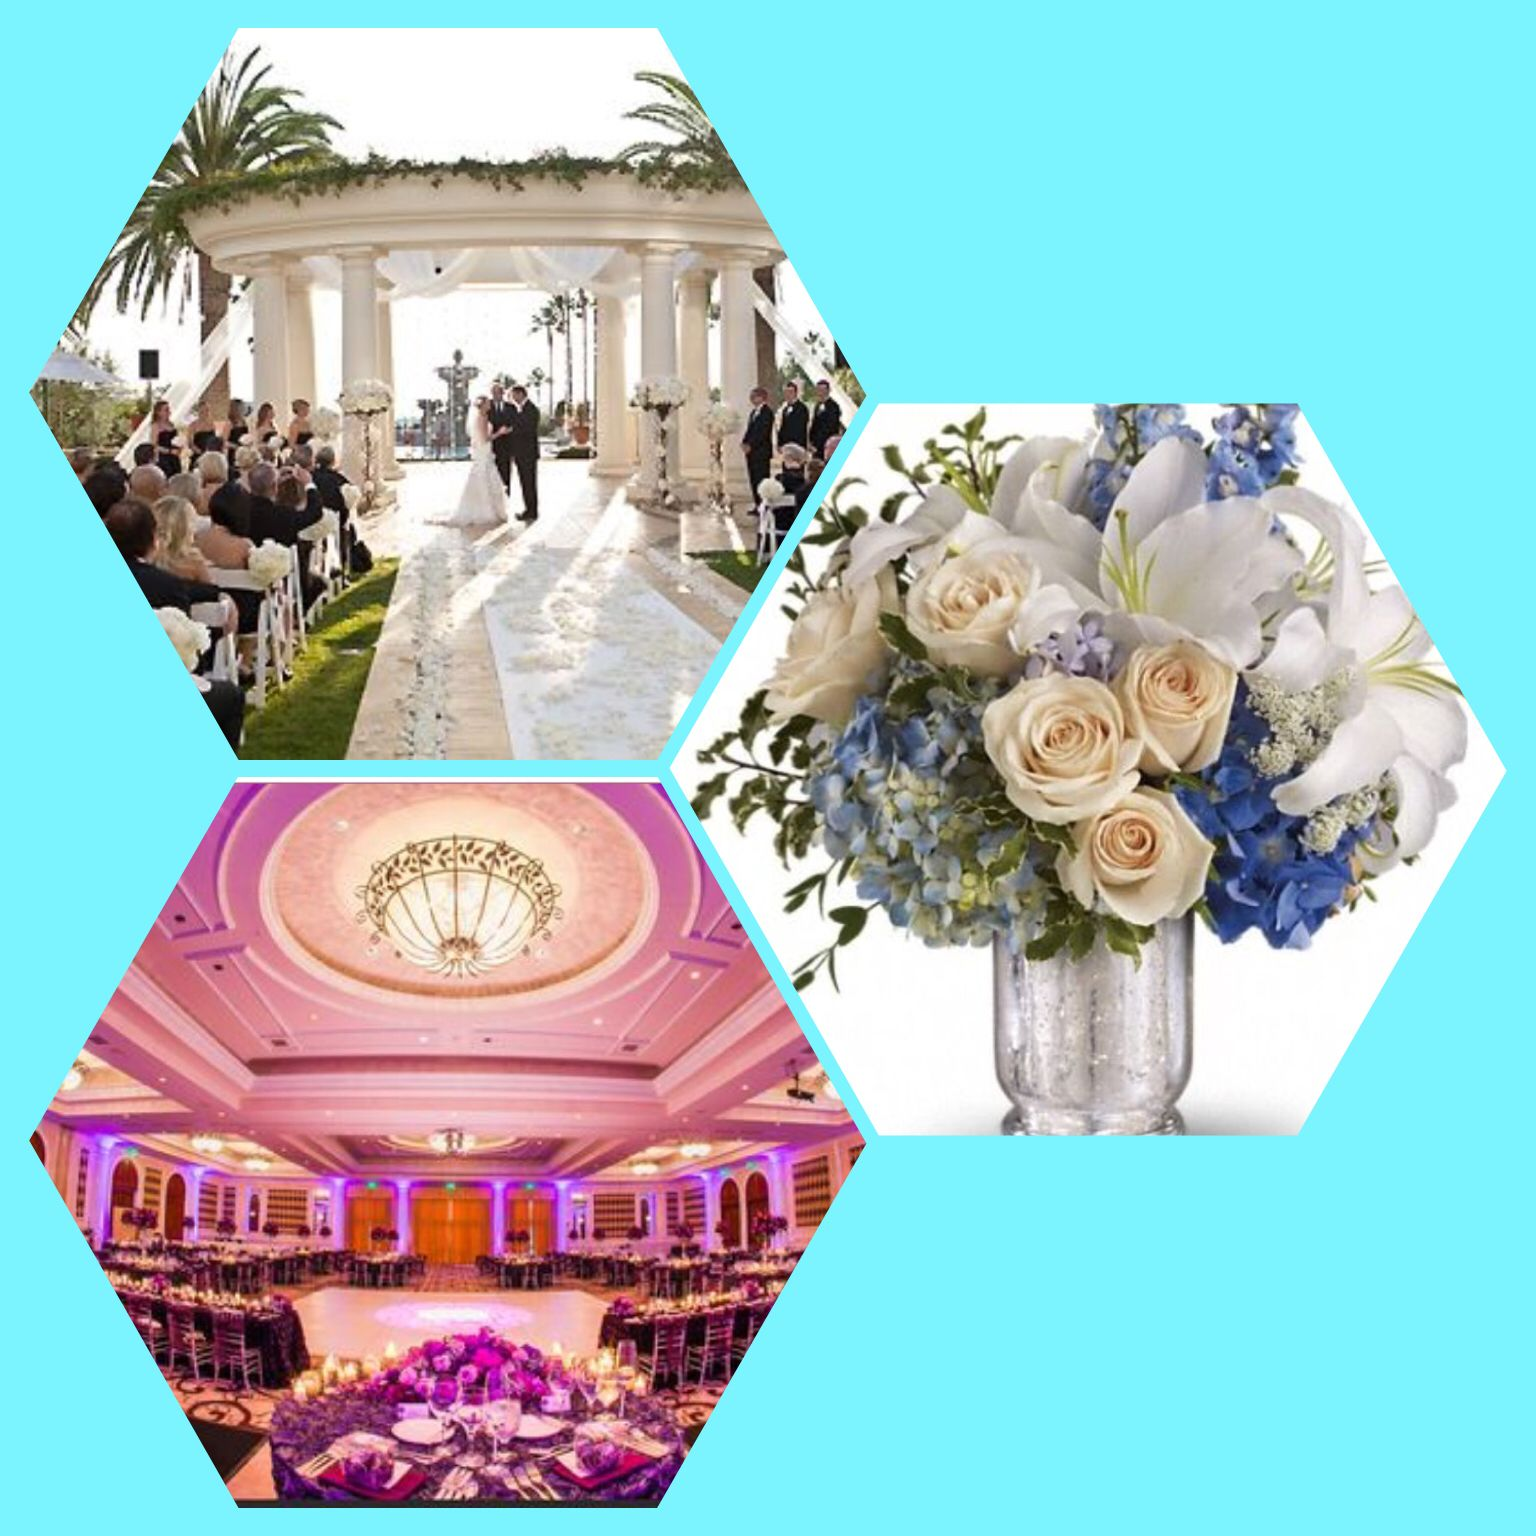 Ceremony Is Outside And Reception Is In A Banquet Hall